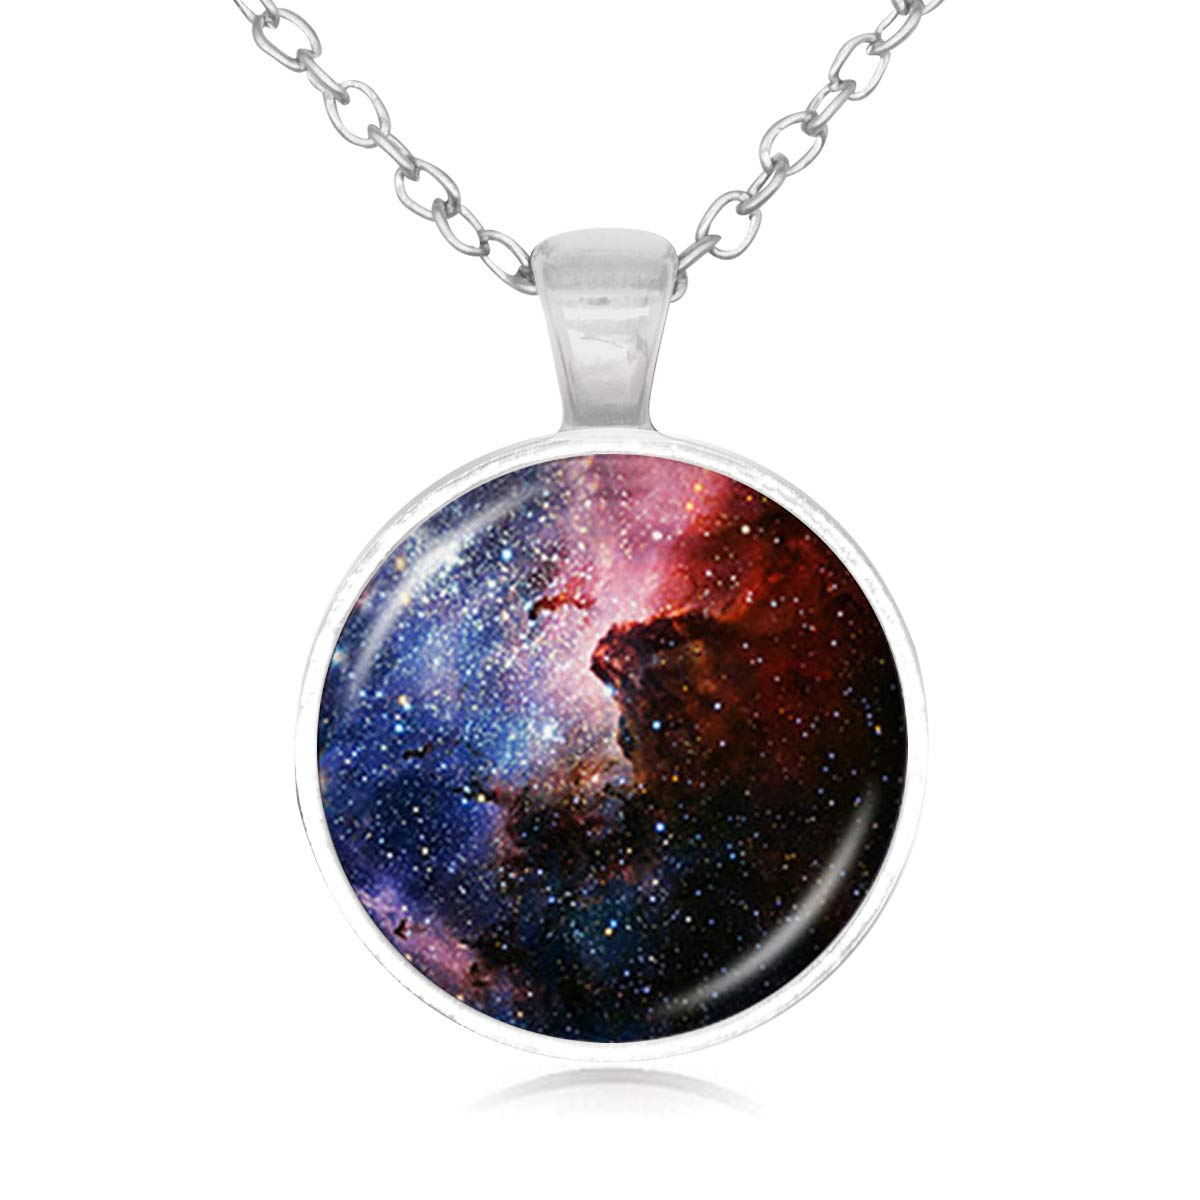 Family Decor Beautiful Starry Sky Pendant Necklace Cabochon Glass Vintage Bronze Chain Necklace Jewelry Handmade